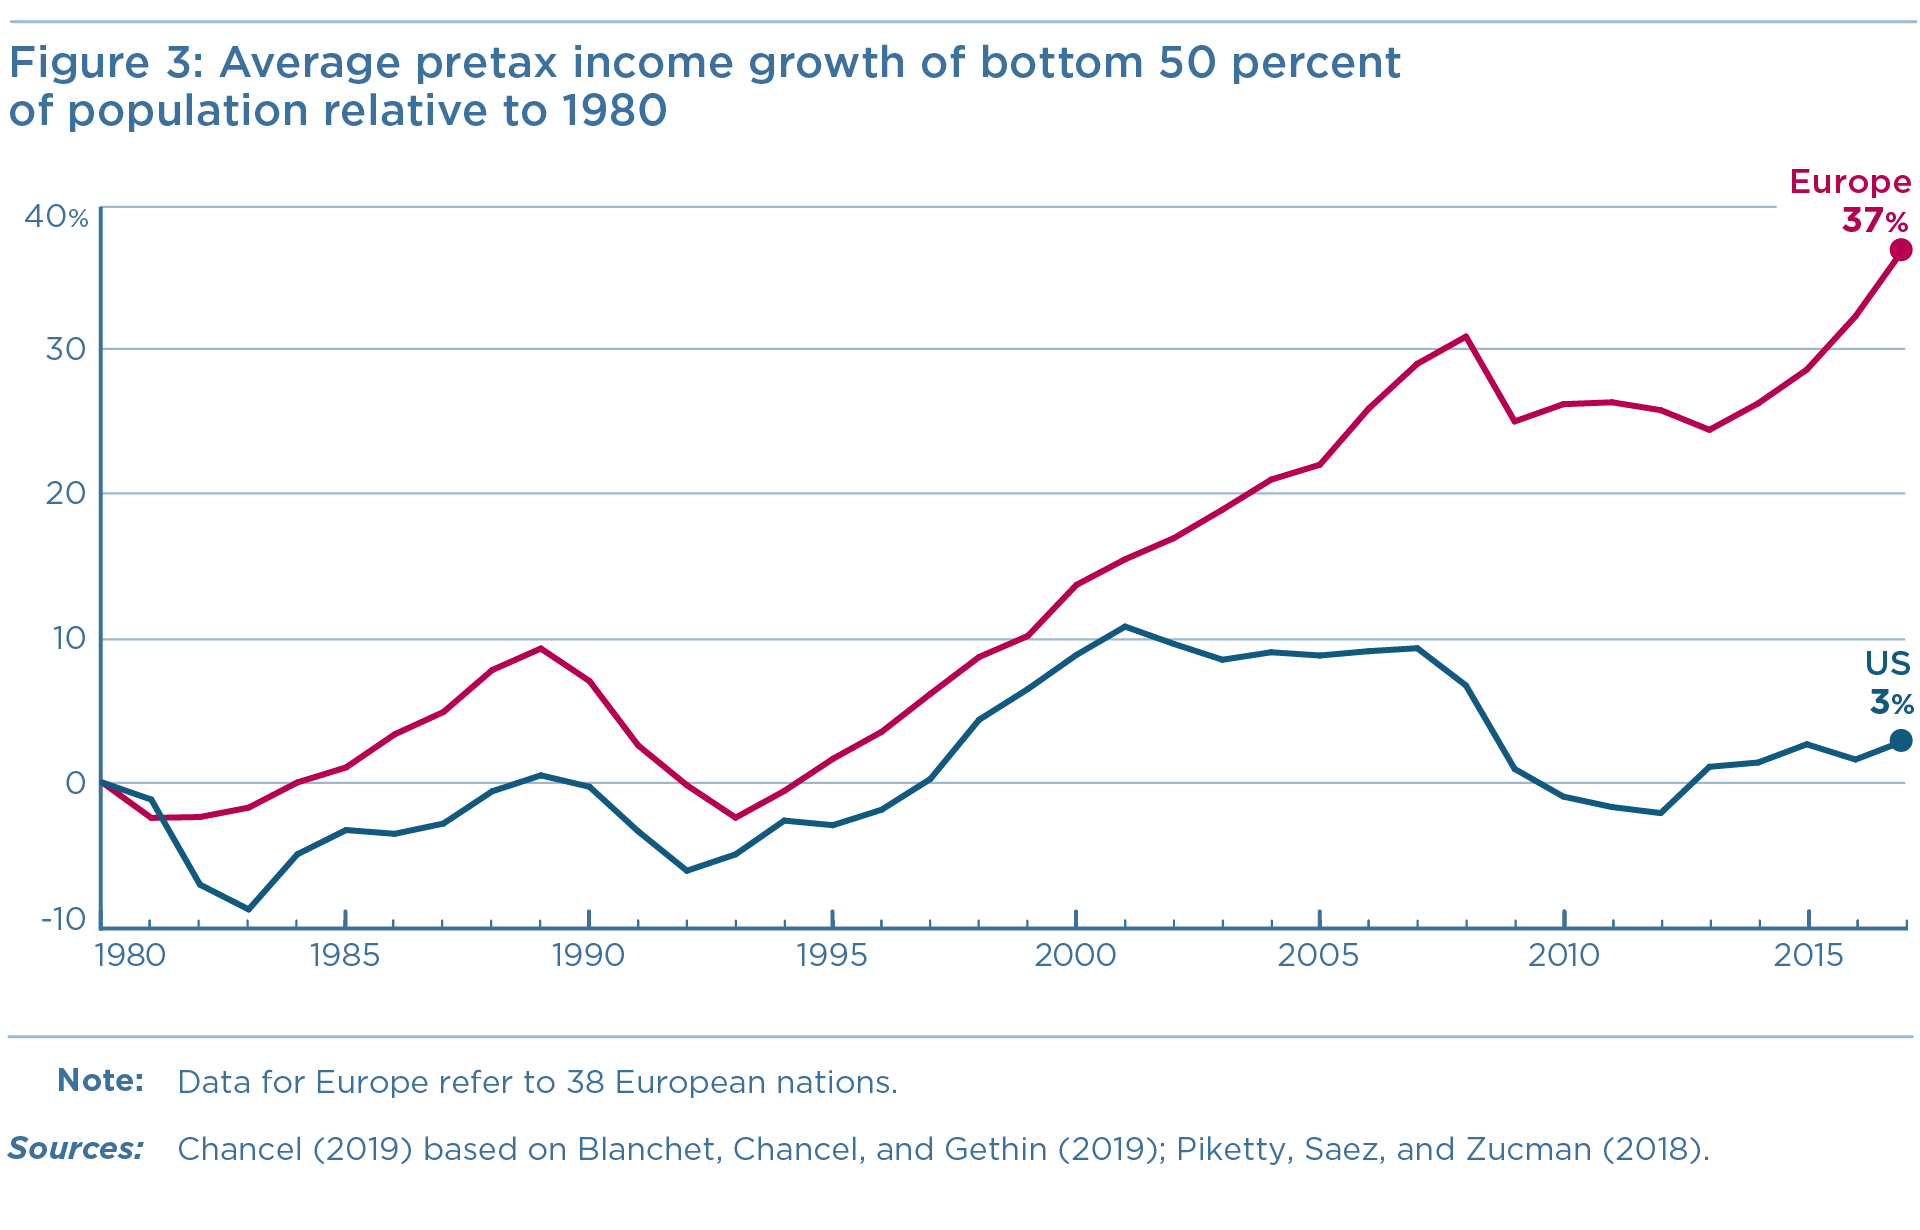 Figure 3: Average pretax income growth of bottom 50 percent of population relative to 1980